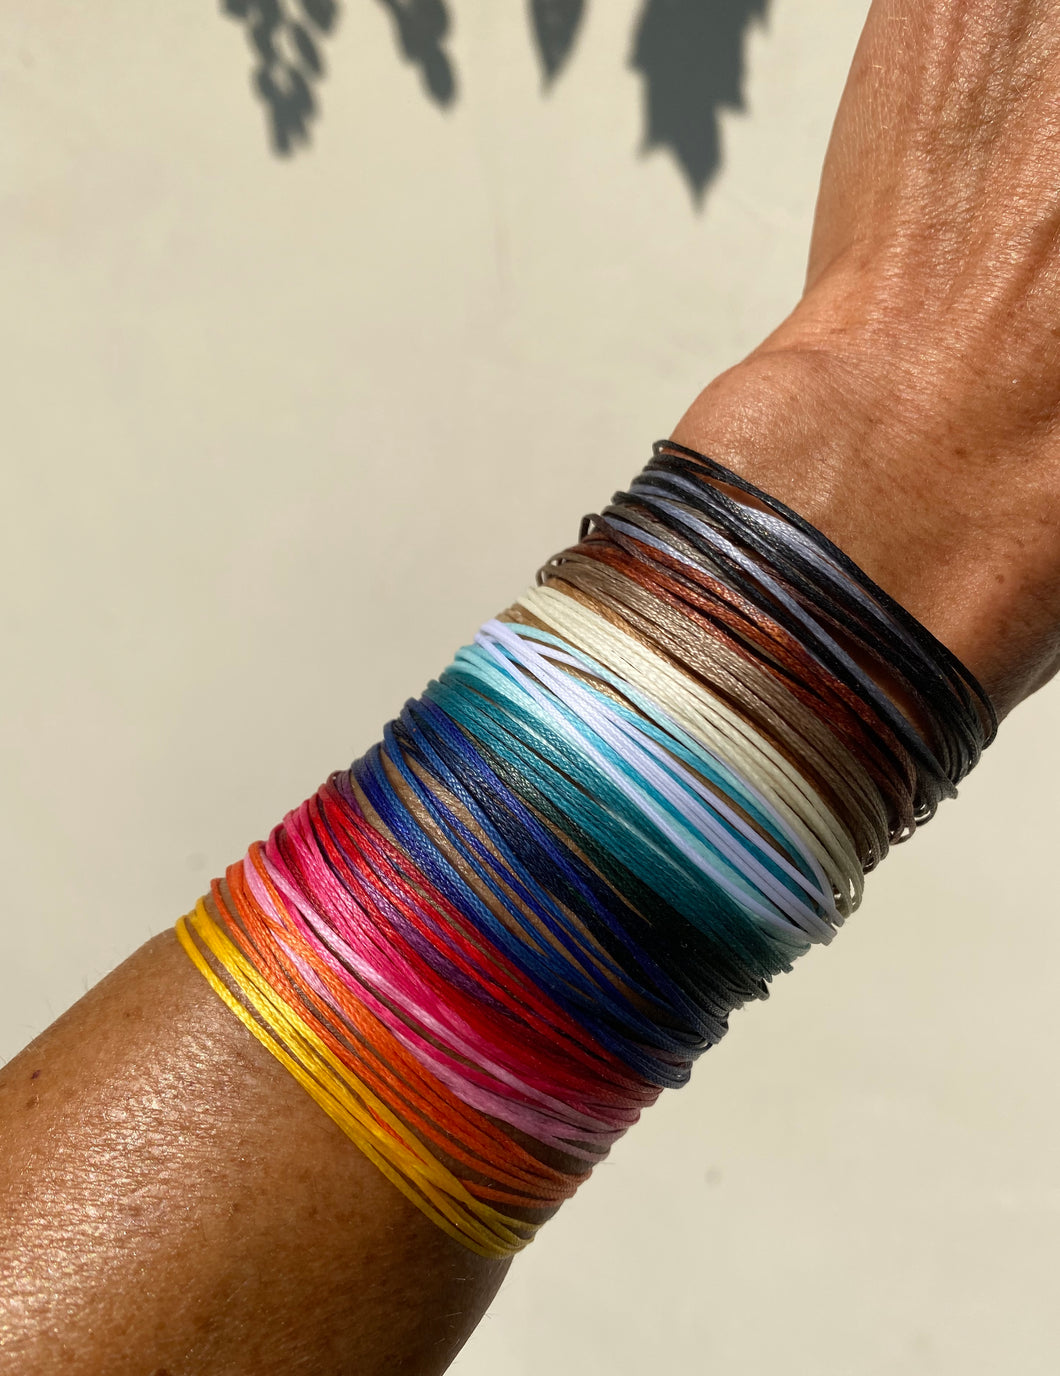 All the colors featured here; choose one color for each bracelet or choose